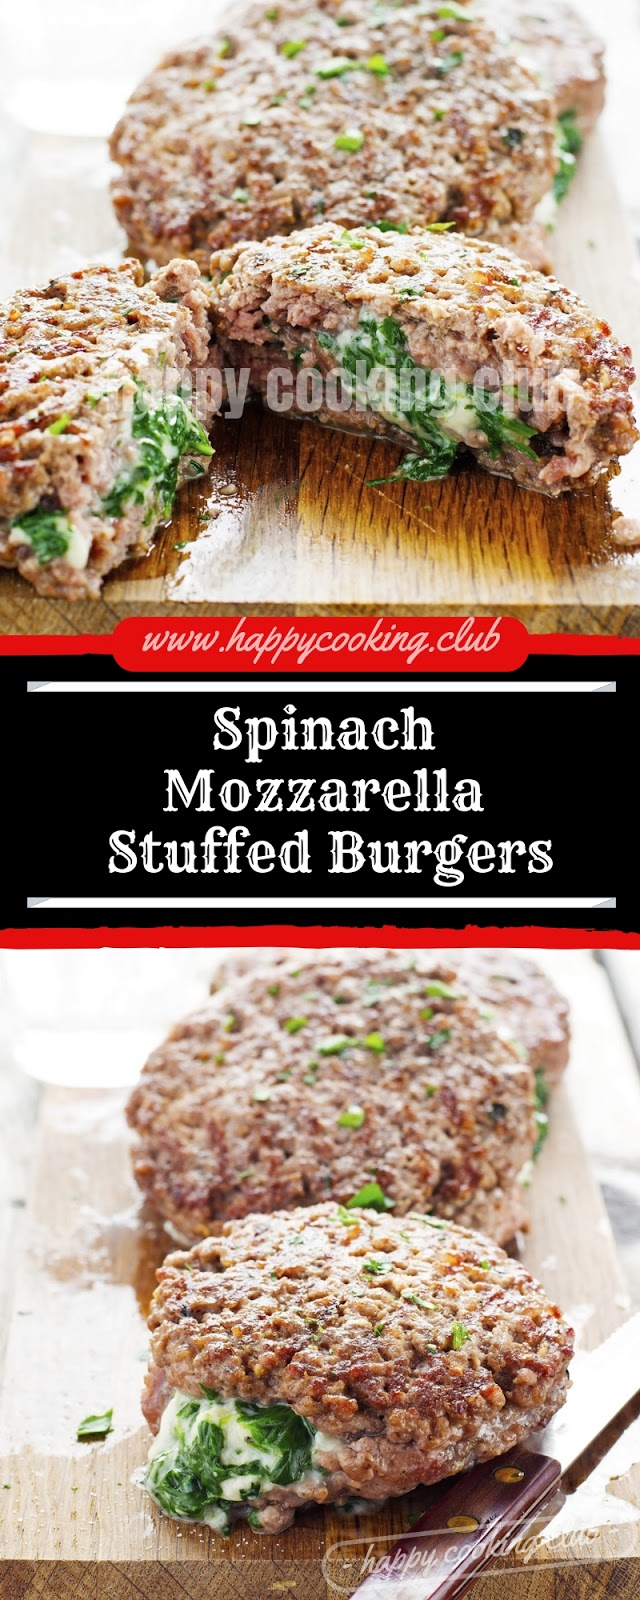 Spinach Mozzarella Stuffed Burgers